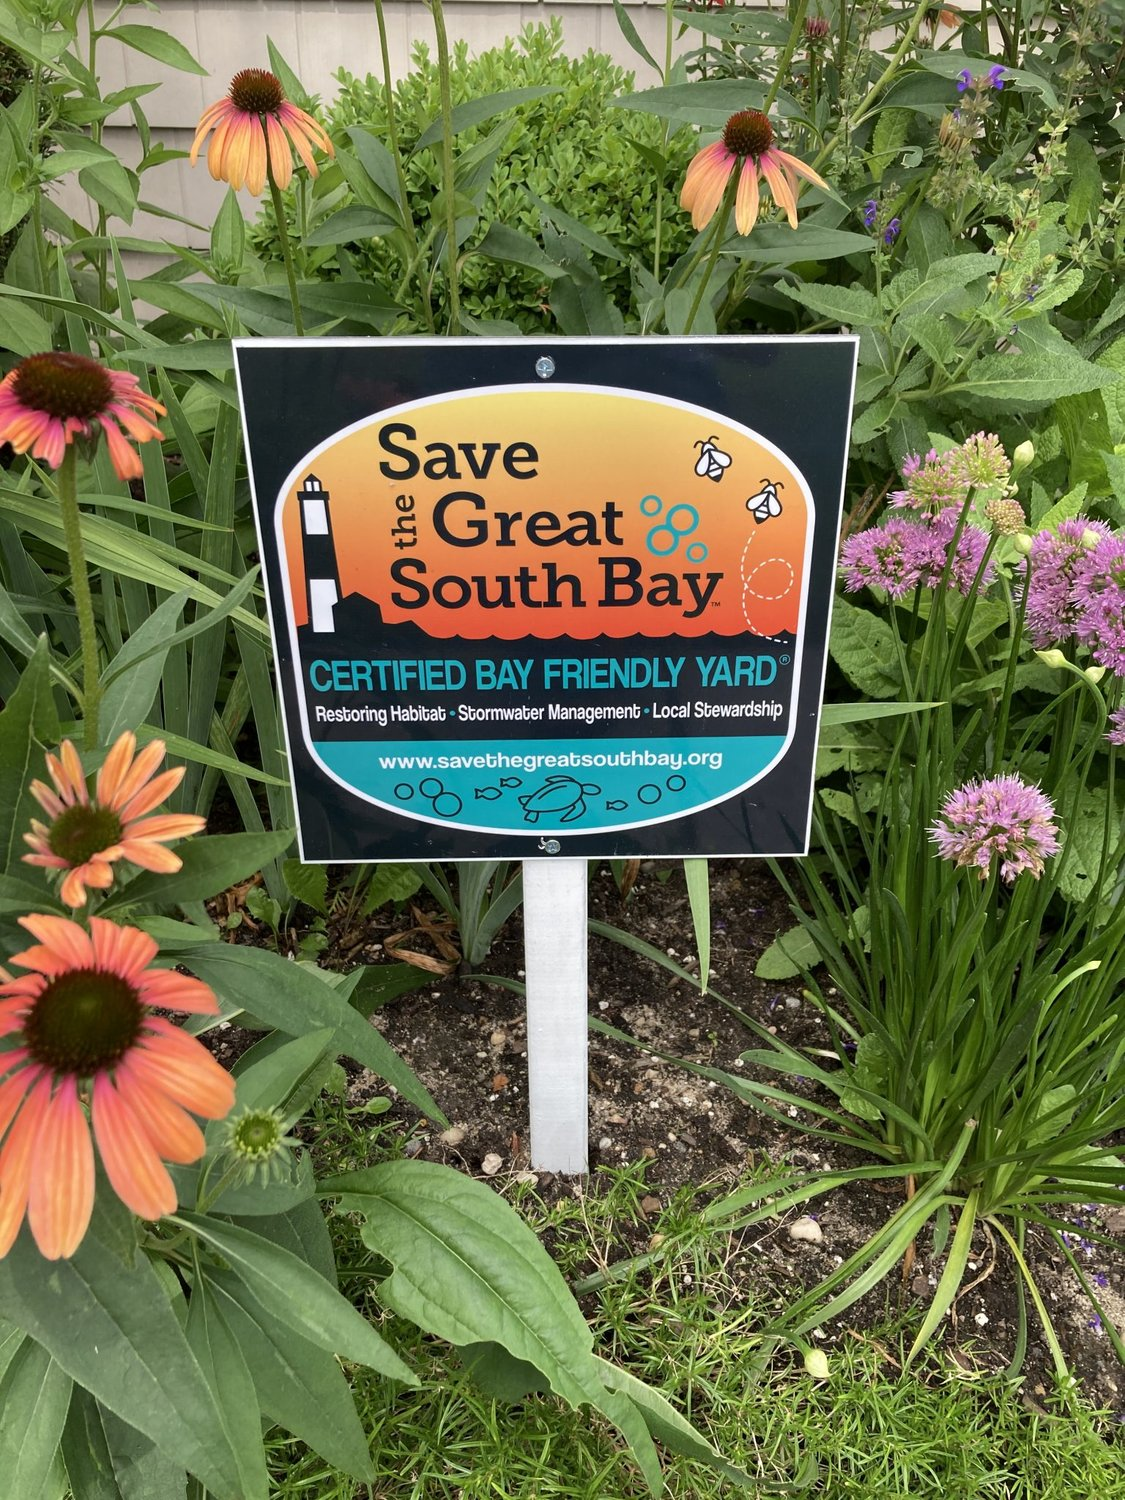 Three steps to a bay-friendly yard include managing stormwater, becoming a steward of your land and restoring habitats.